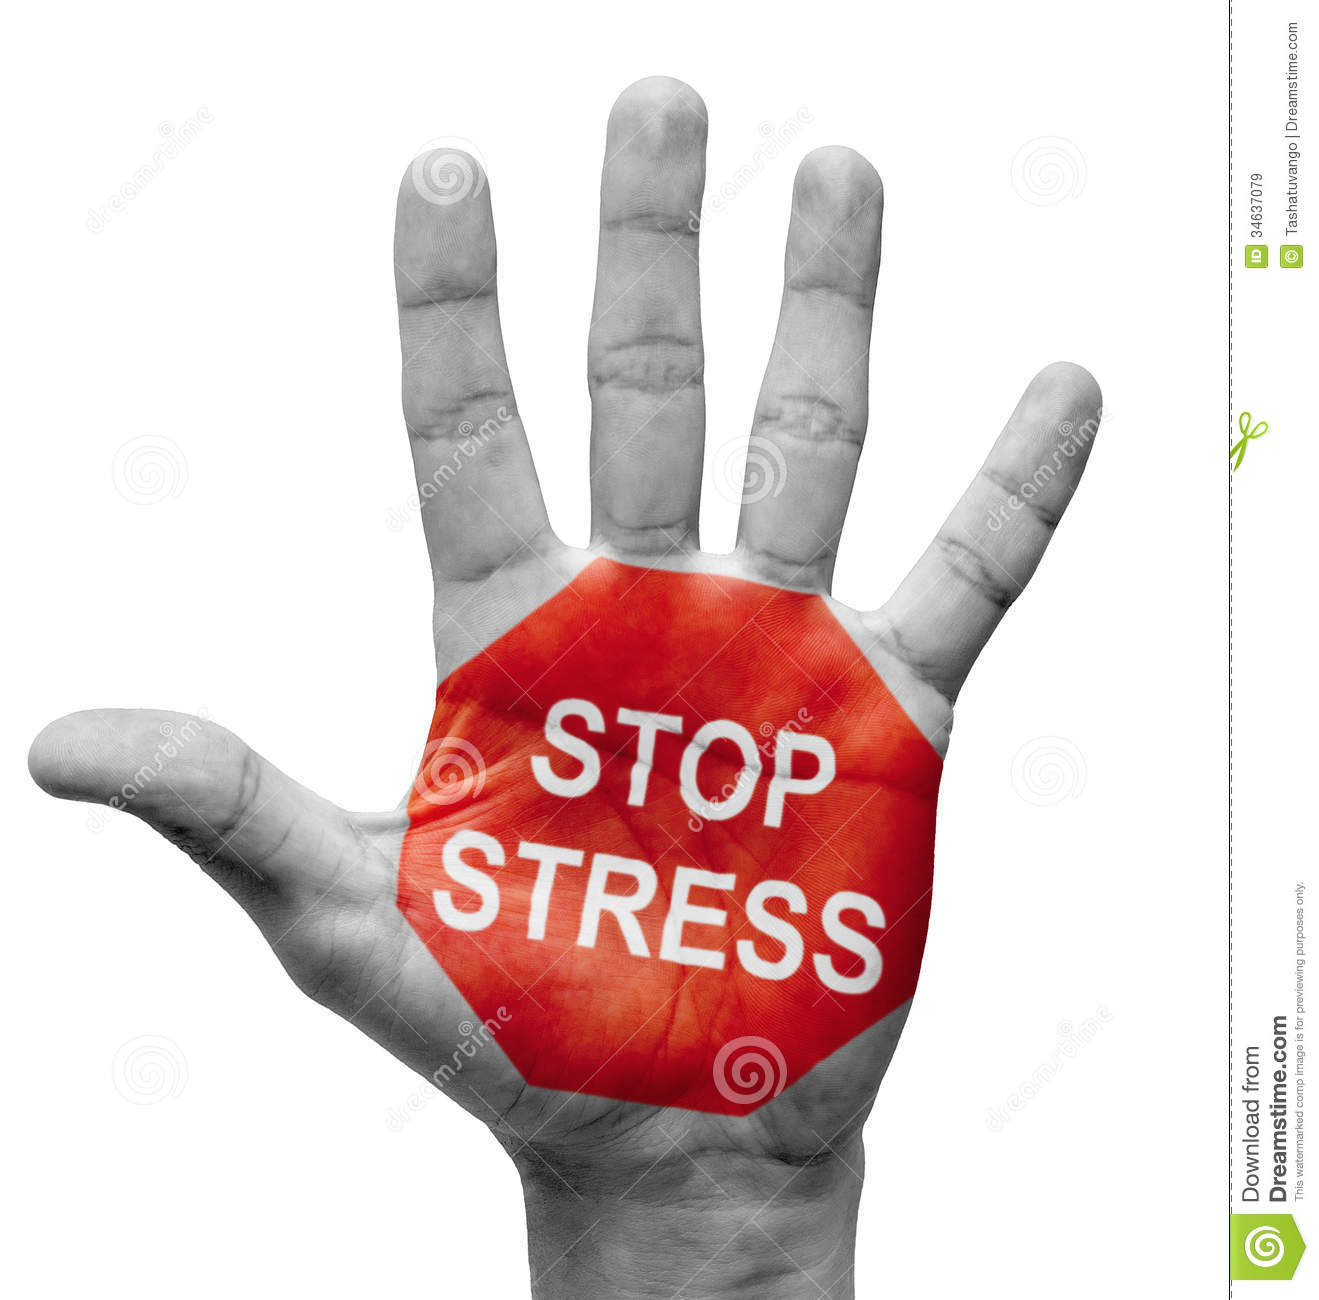 Stop stress concept royalty free stock images image 34637079